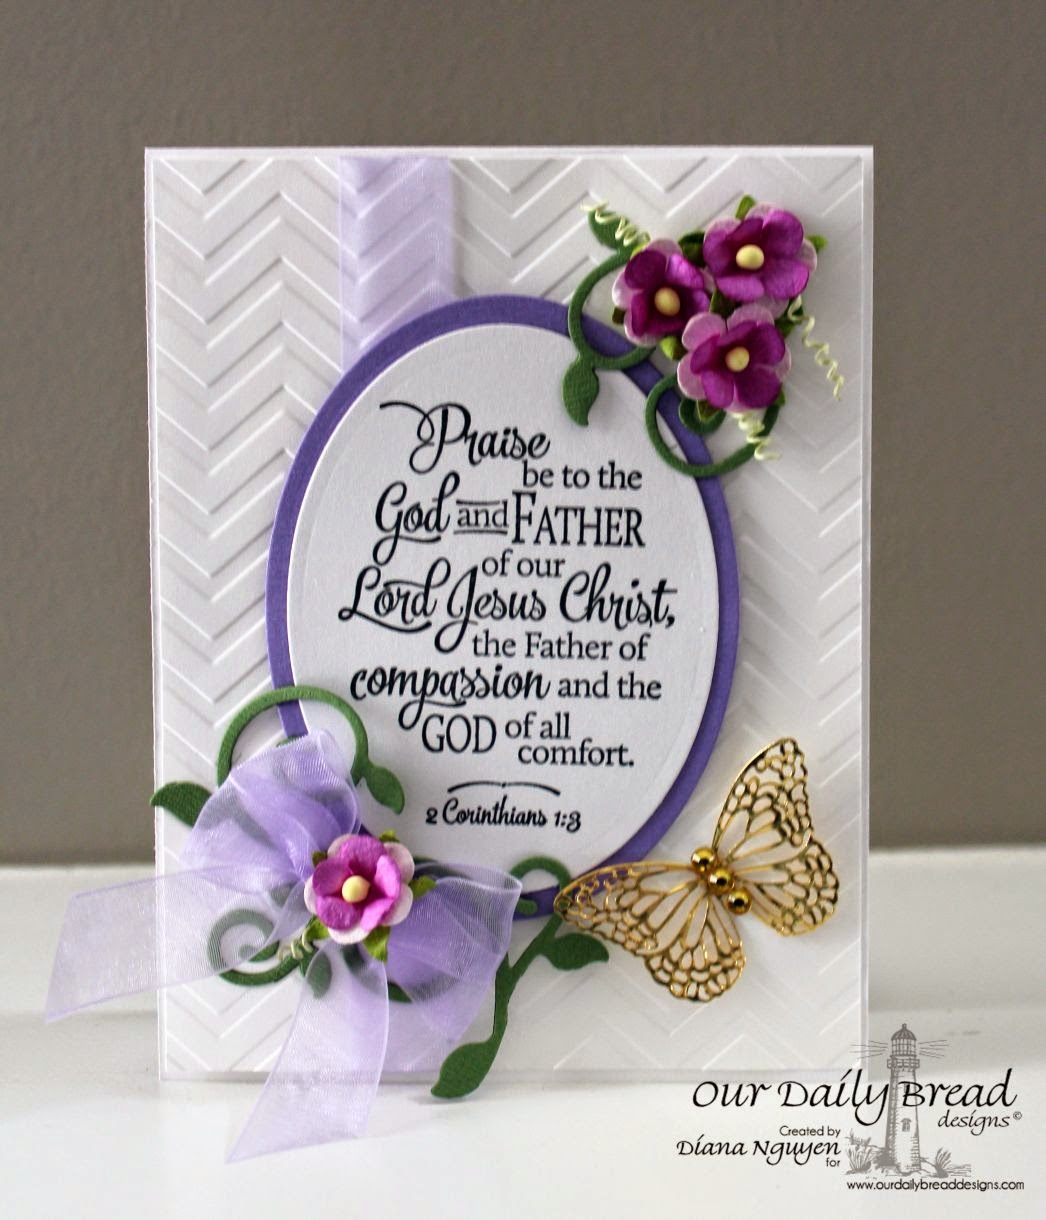 Diana Nguyen, Scripture, Our Daily Bread Designs, Scripture Collection 13, card